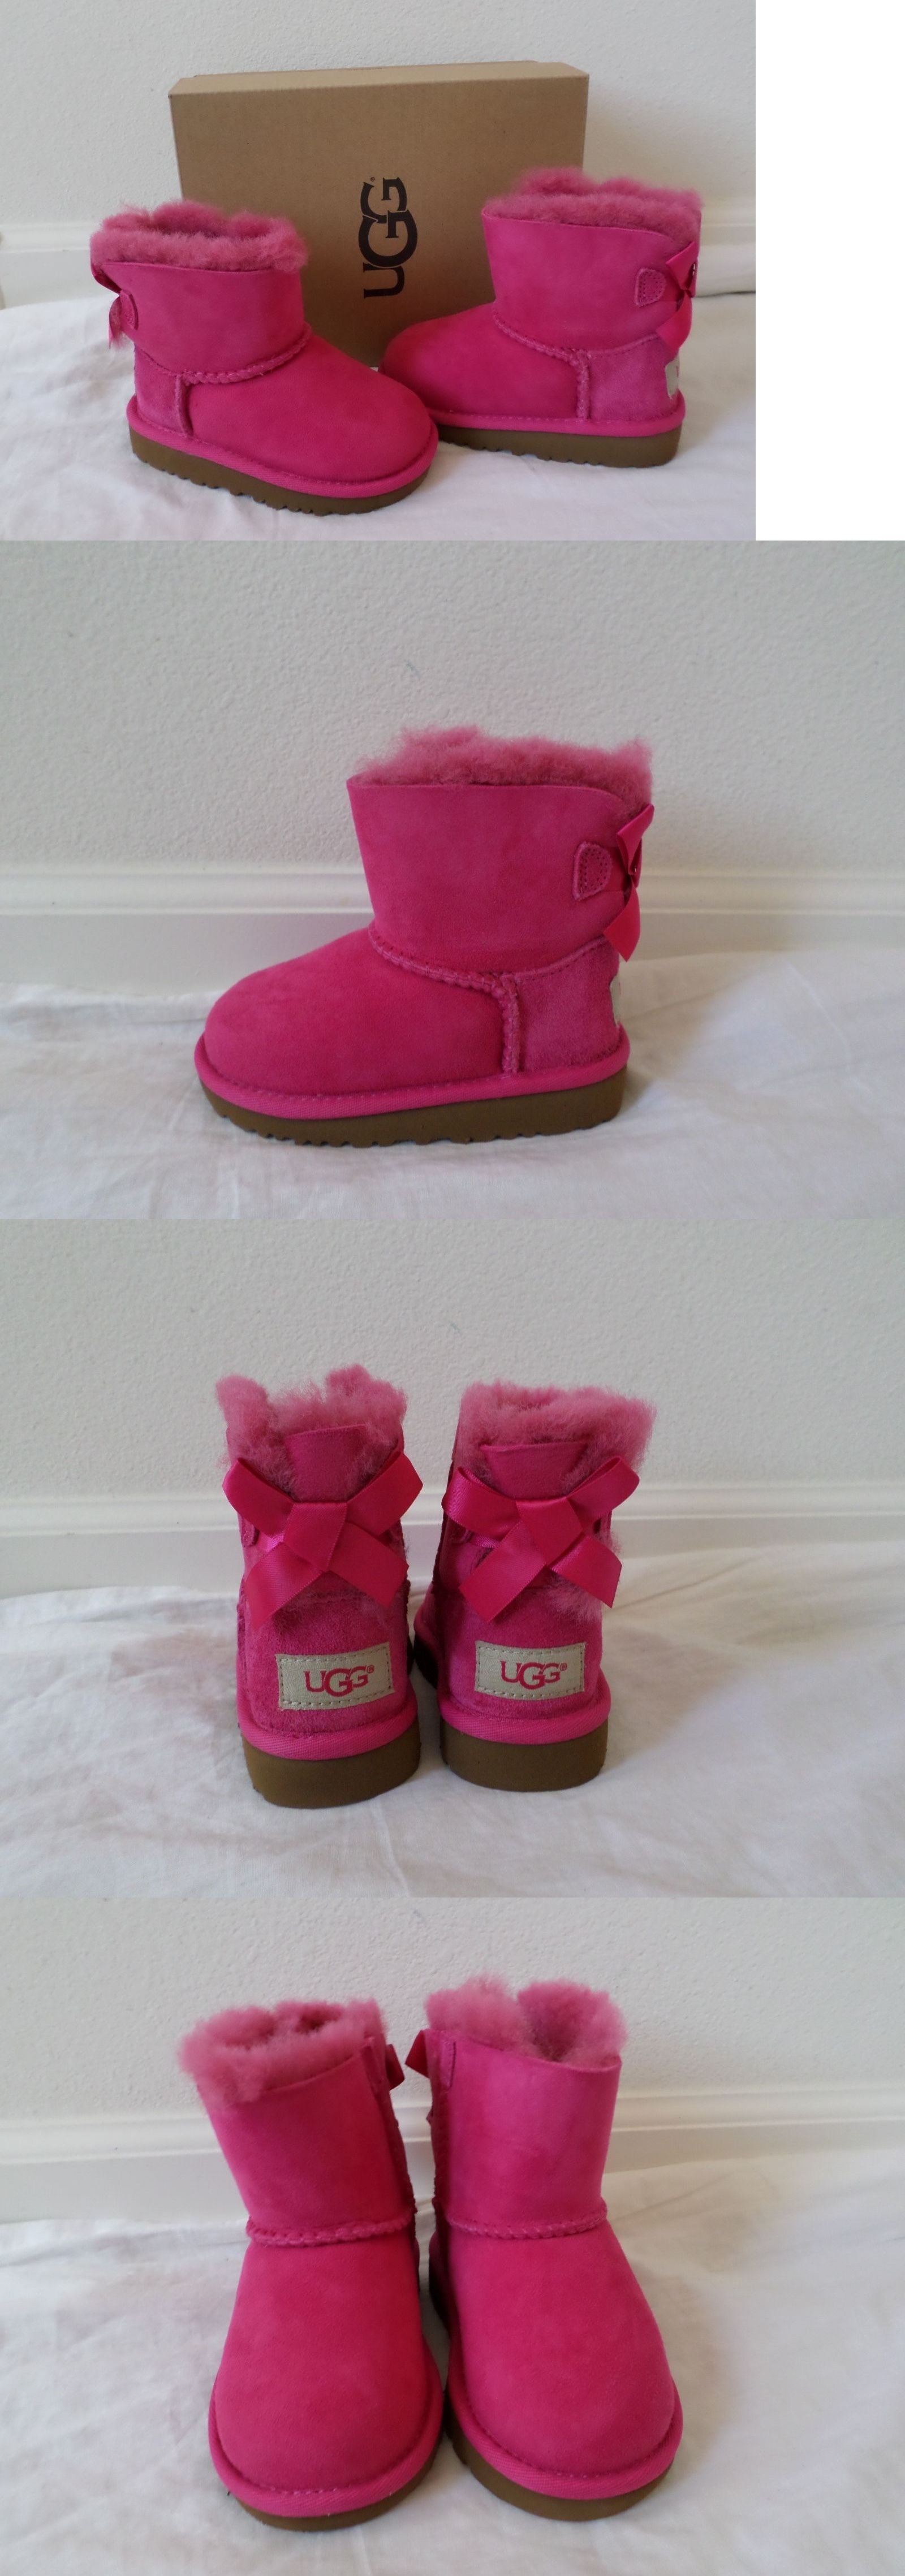 Chaussures pour bébé 147285: 7016 Nouveau Mini Girls Bailey Bow Ugg Toddler Australia Toddler Girls 1cedb47 - vendingmatic.info